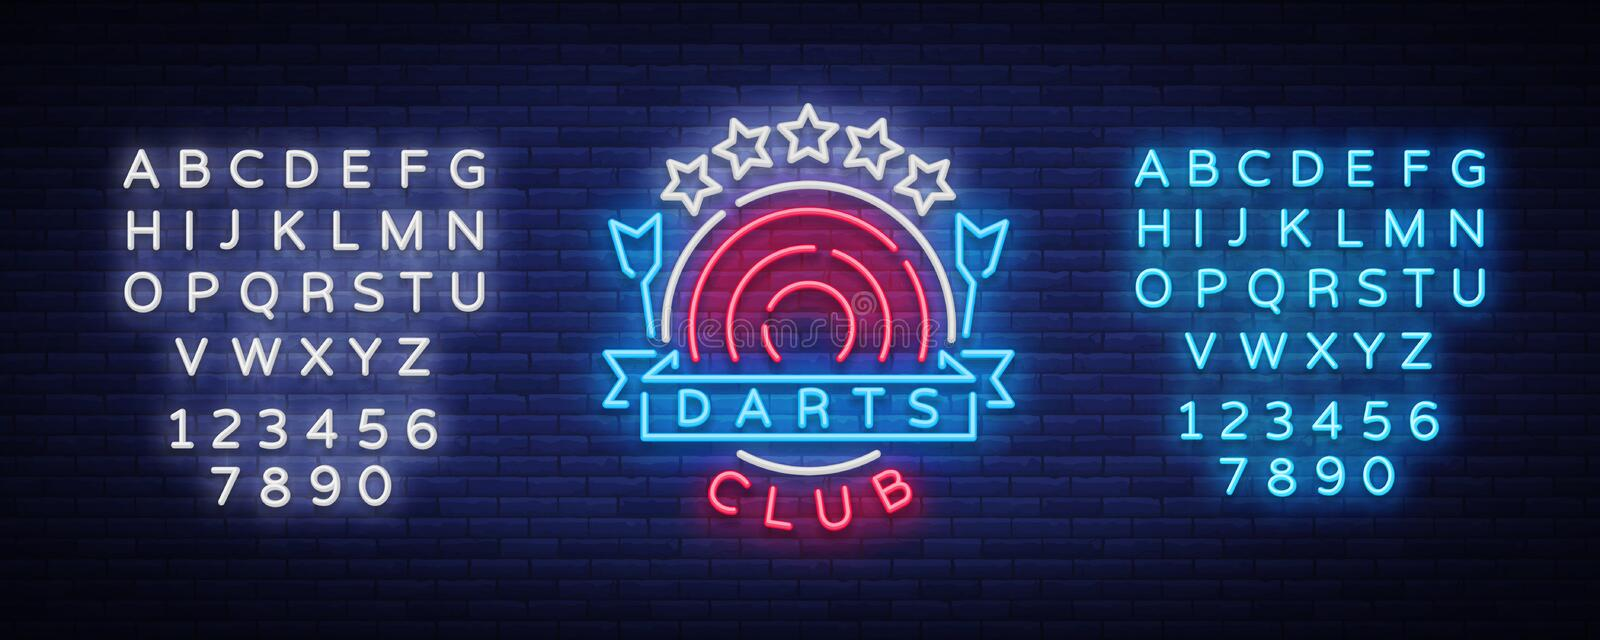 Darts Club Logo in Neon Style. Neon Sign, Bright Night Advertising, Light Banner. Vecton illustration. Editing text neon. Sign stock illustration